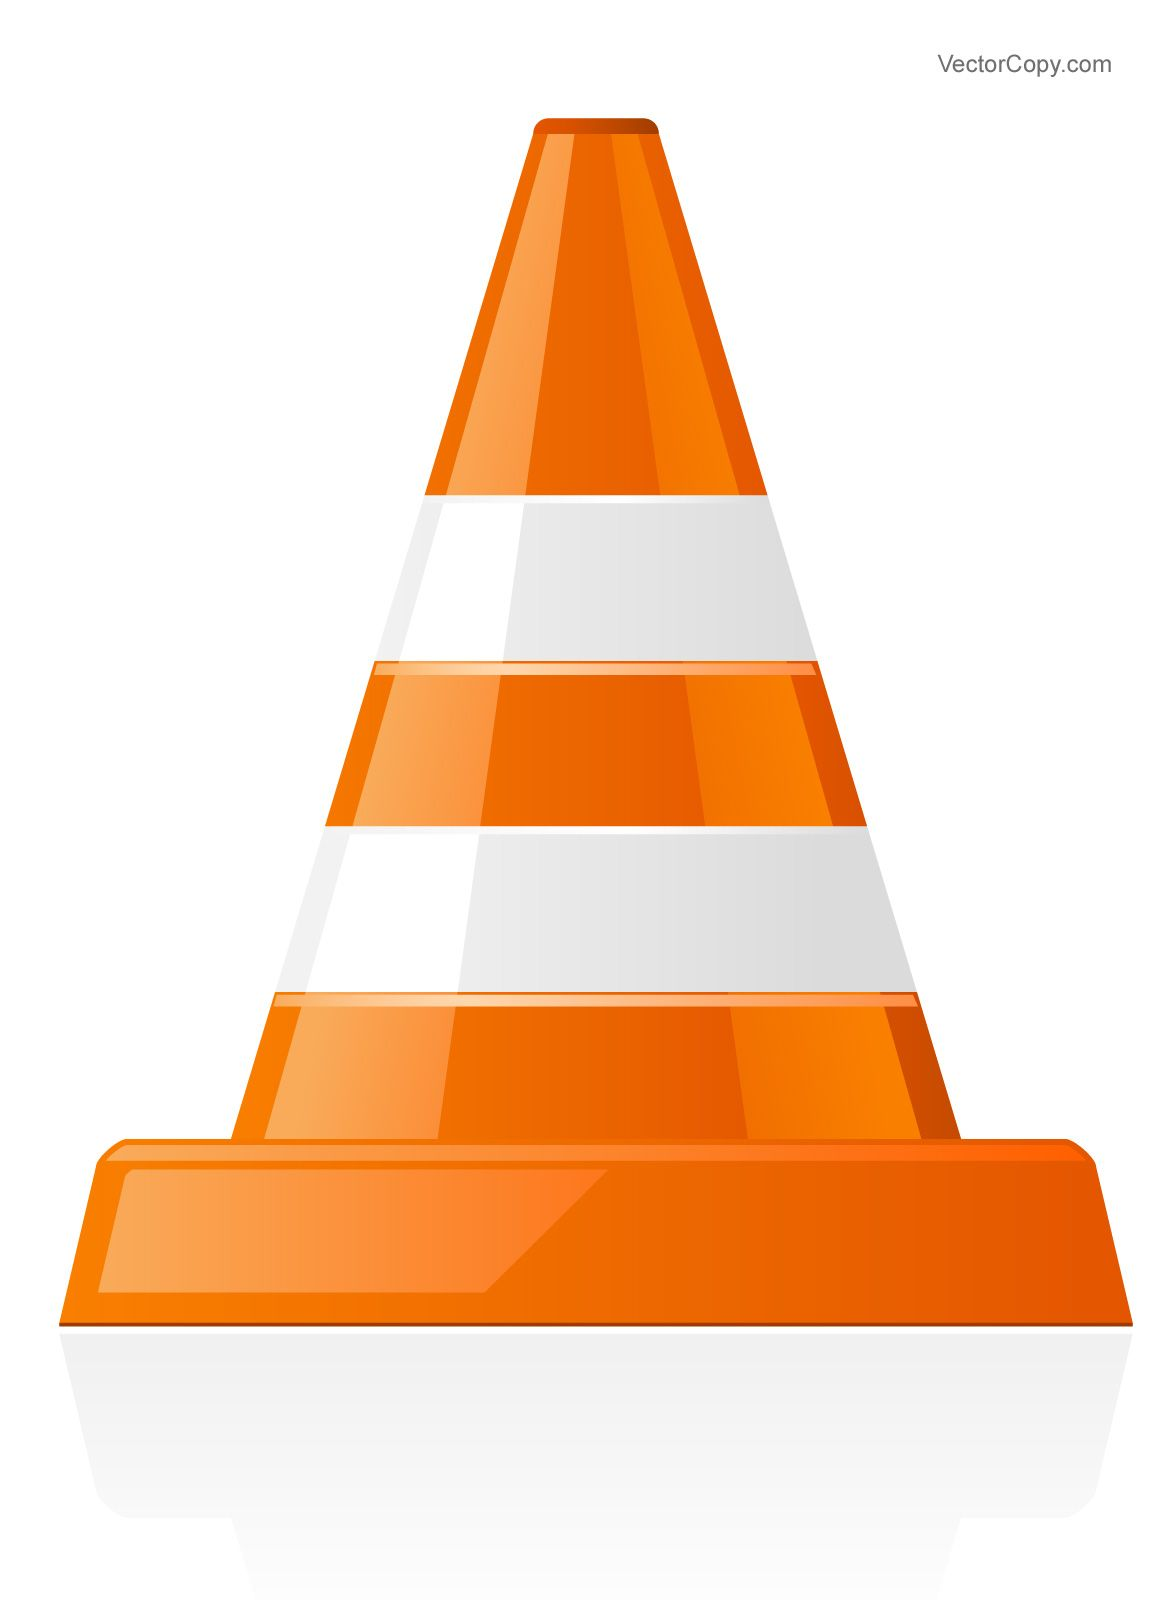 Traffic cone clipart free clipart library stock Traffic cone icon, free vector   Vector Objects in 2019 ... clipart library stock